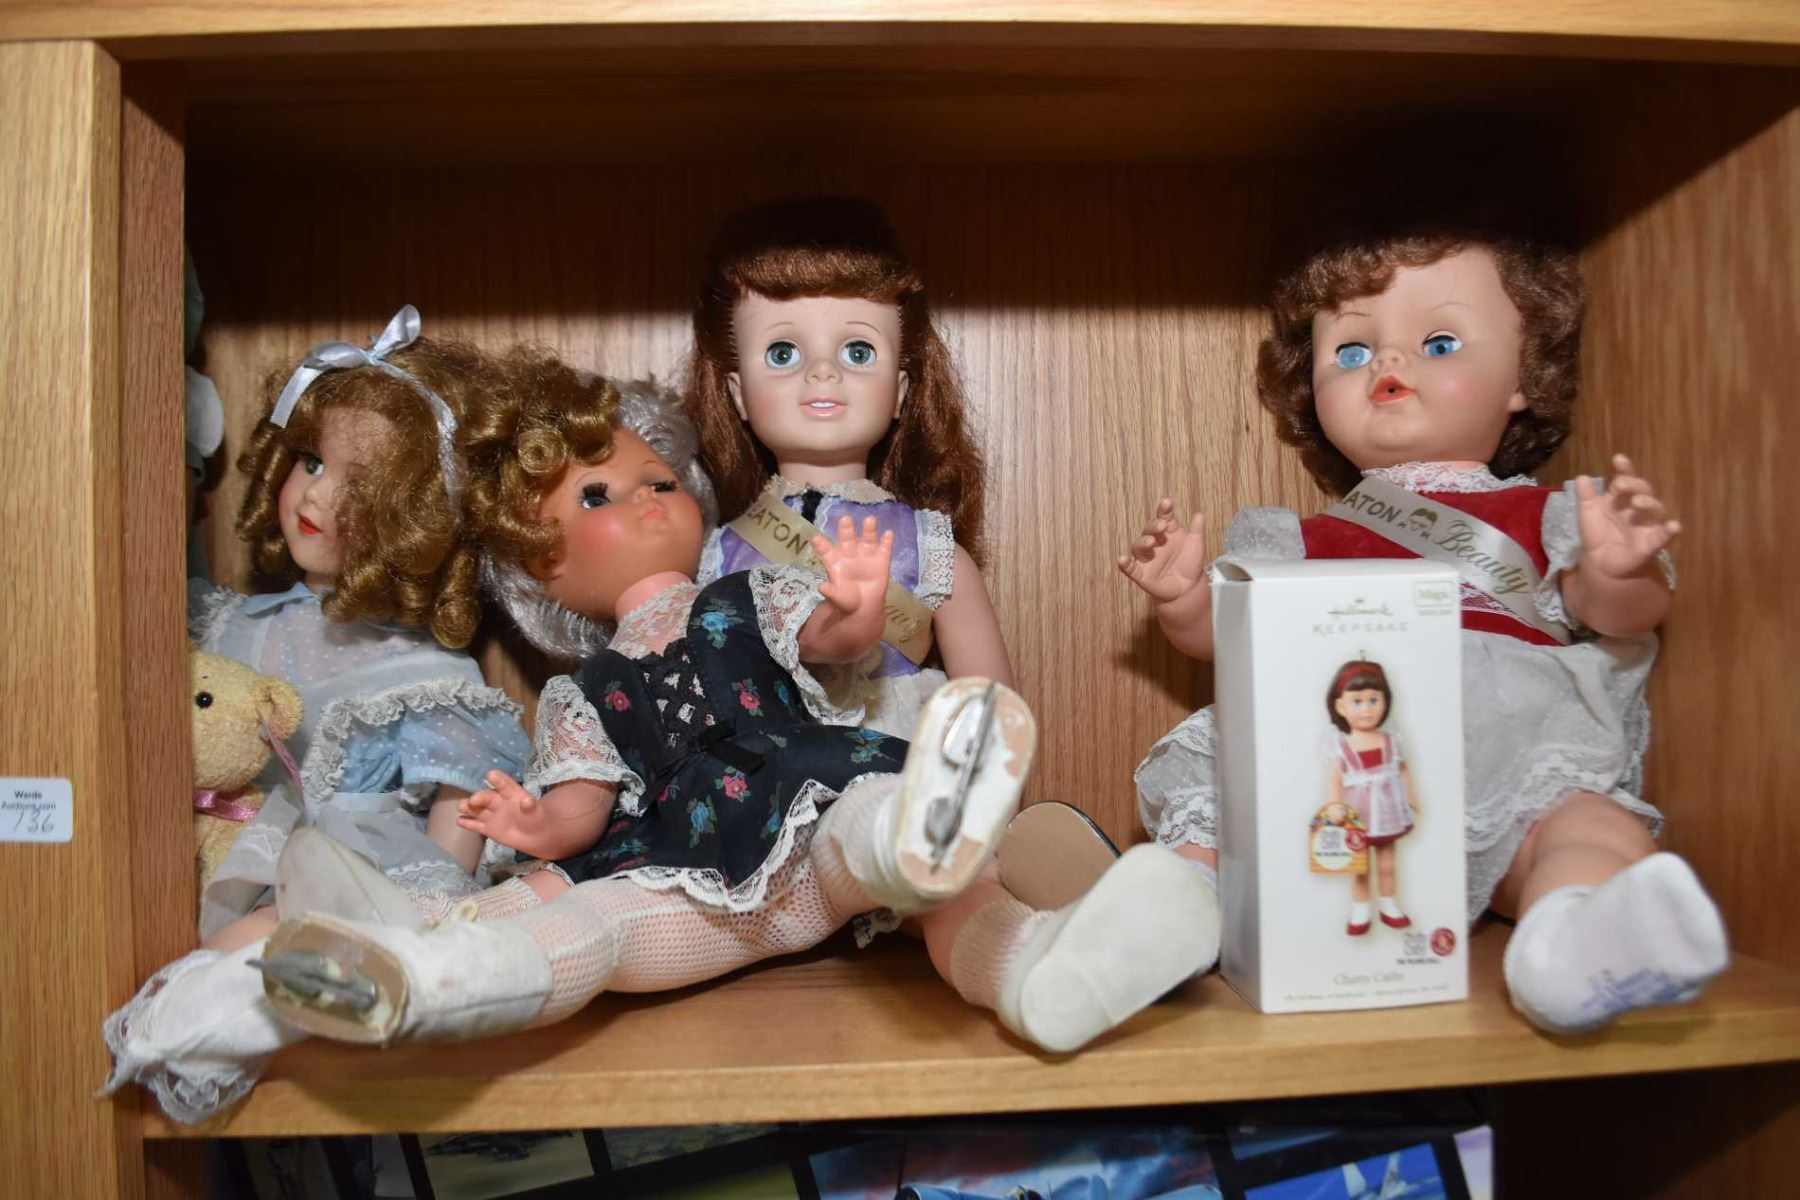 7efc08b2ae85 ... Image 2 : Shelf lot of vintage and collectible dolls including Shirley  Temple, composition,